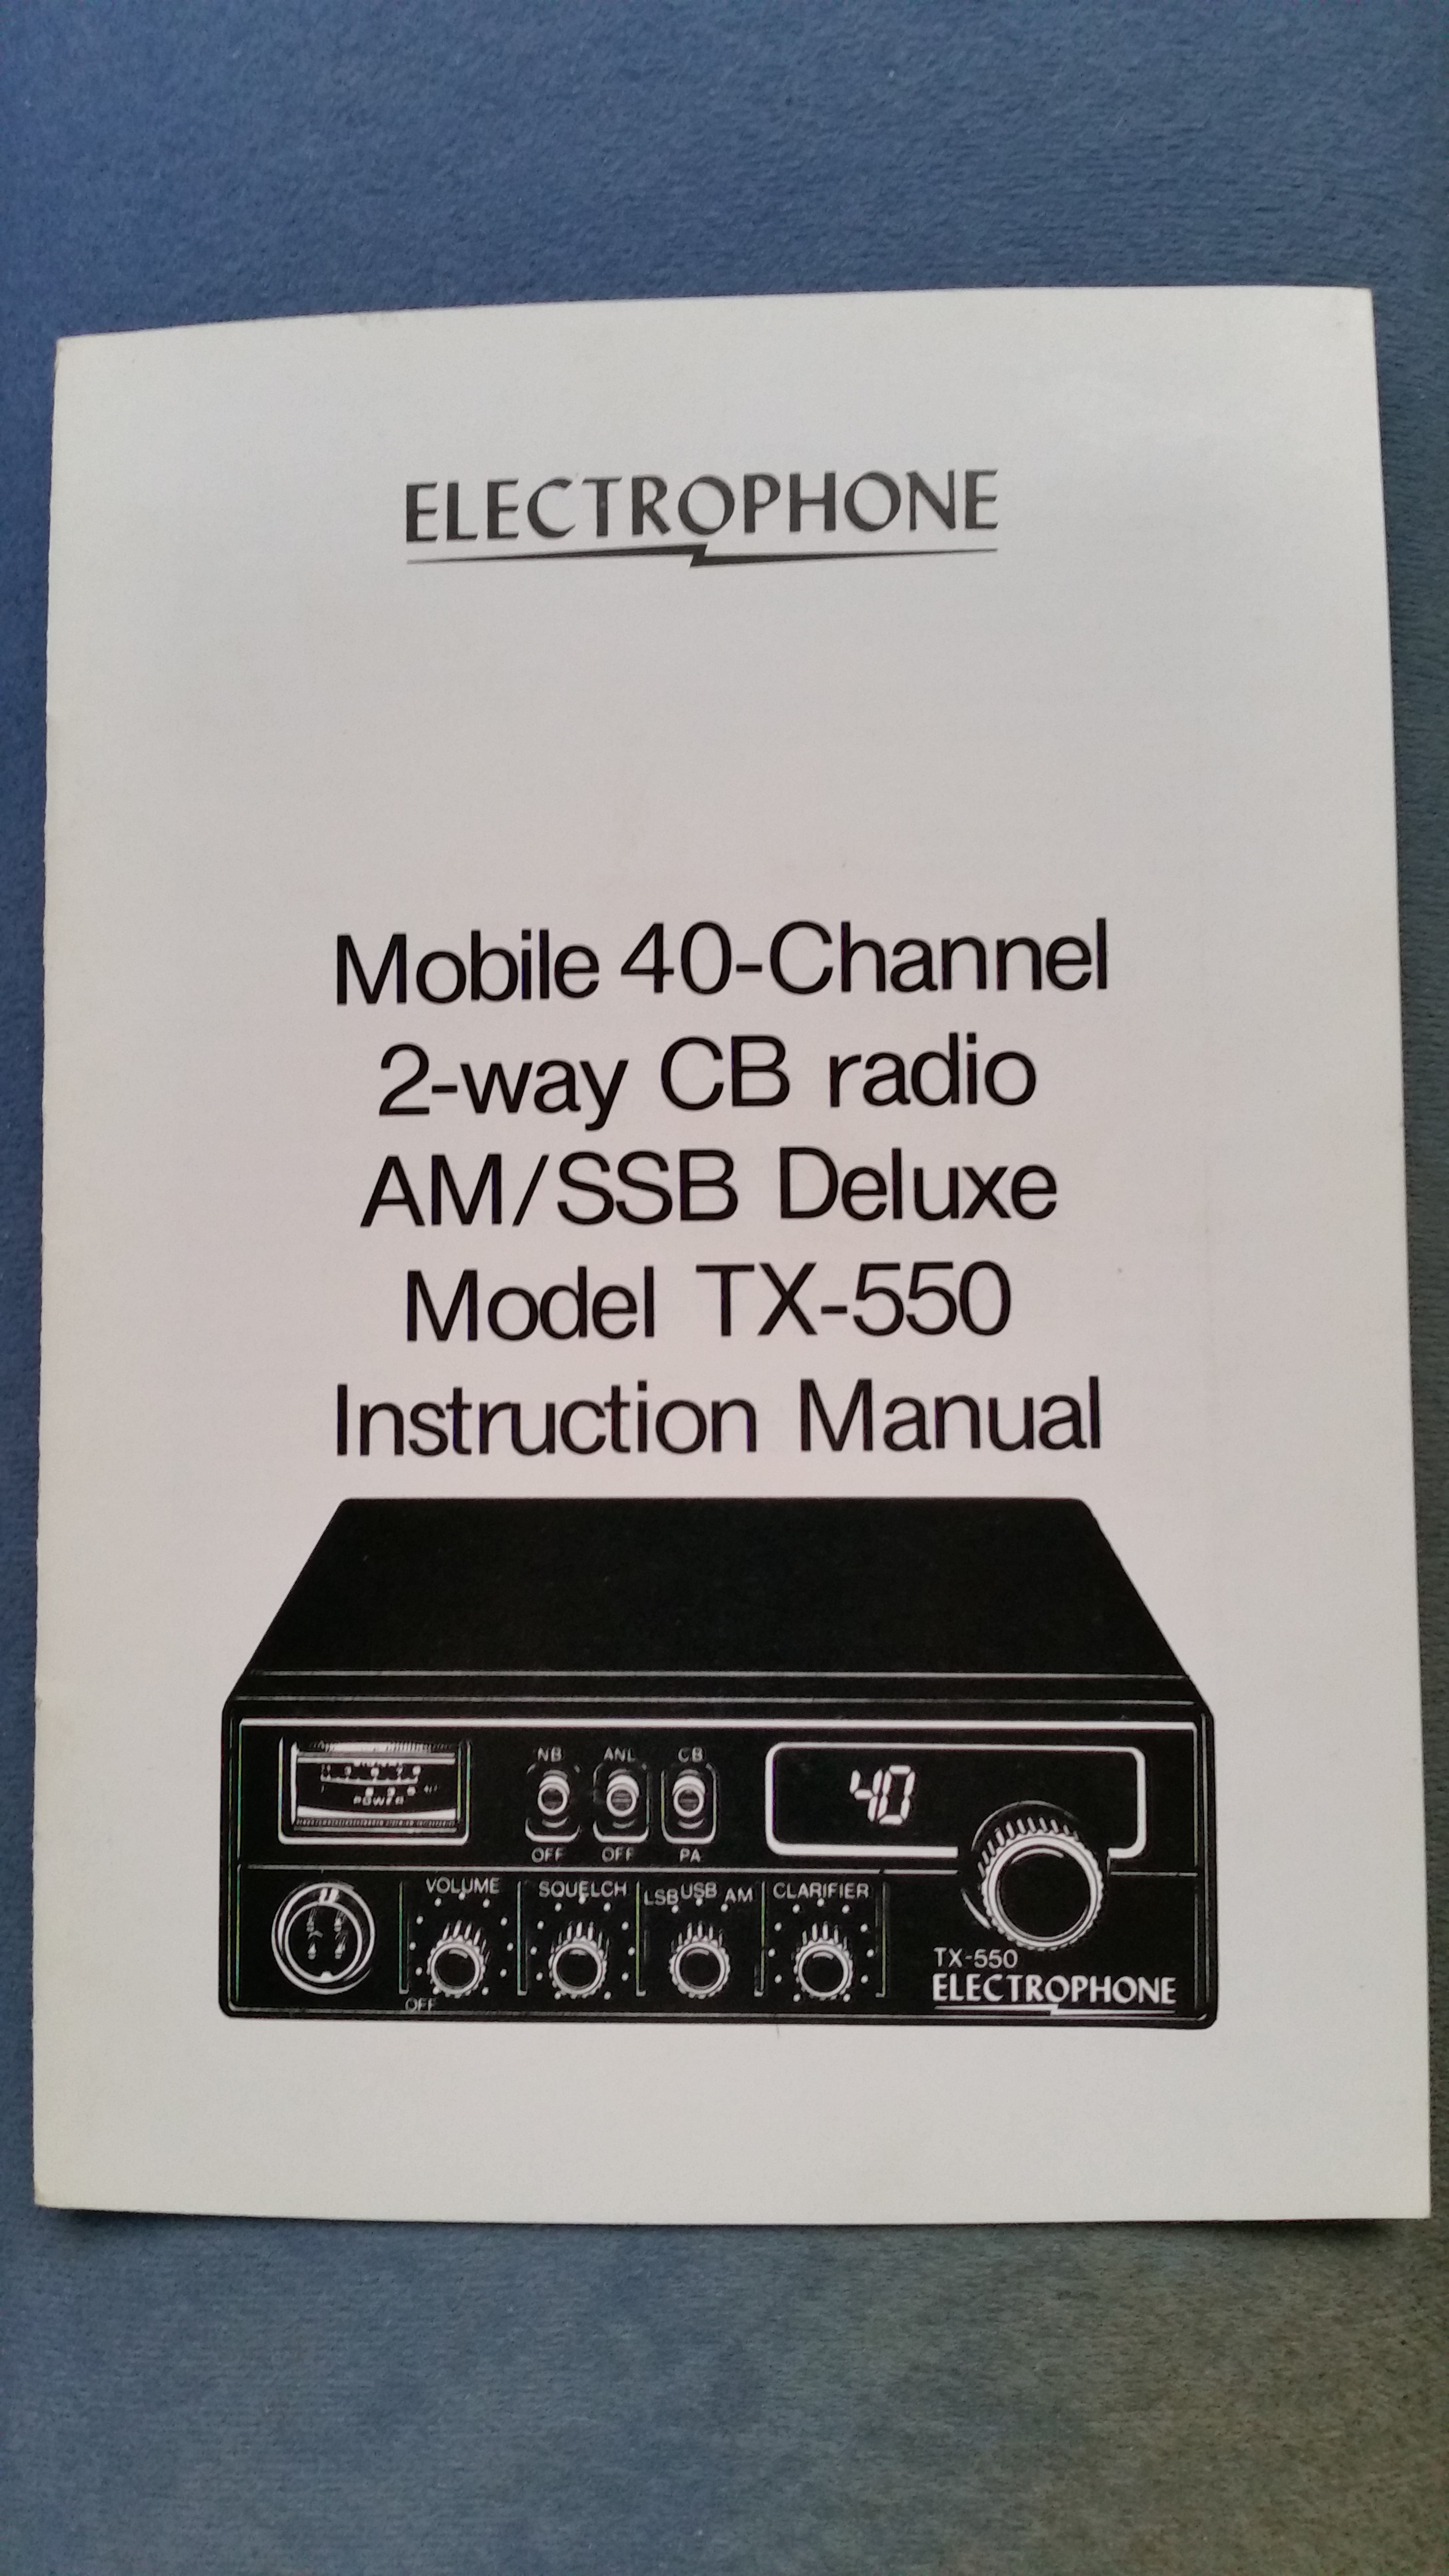 Instruction Manual - Electrophone Mobile 40 Channel 2 way CB Radio AM/SSB Deluxe Model TX-550  Instruction Manual